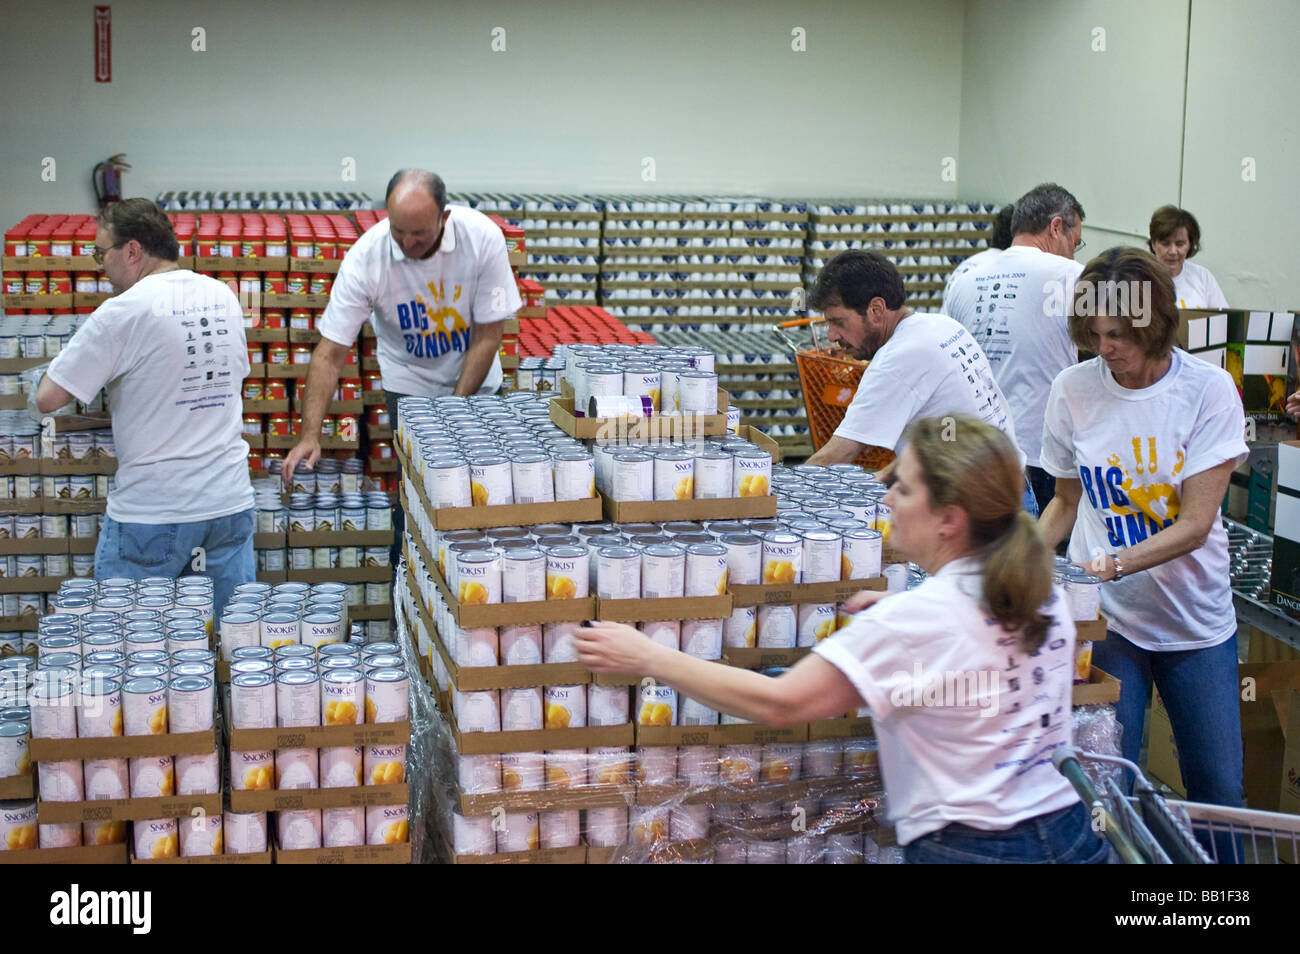 Volunteers stacking up and organizing cans in the warehouse of the California Food Bank in Garden Grove, California - Stock Image